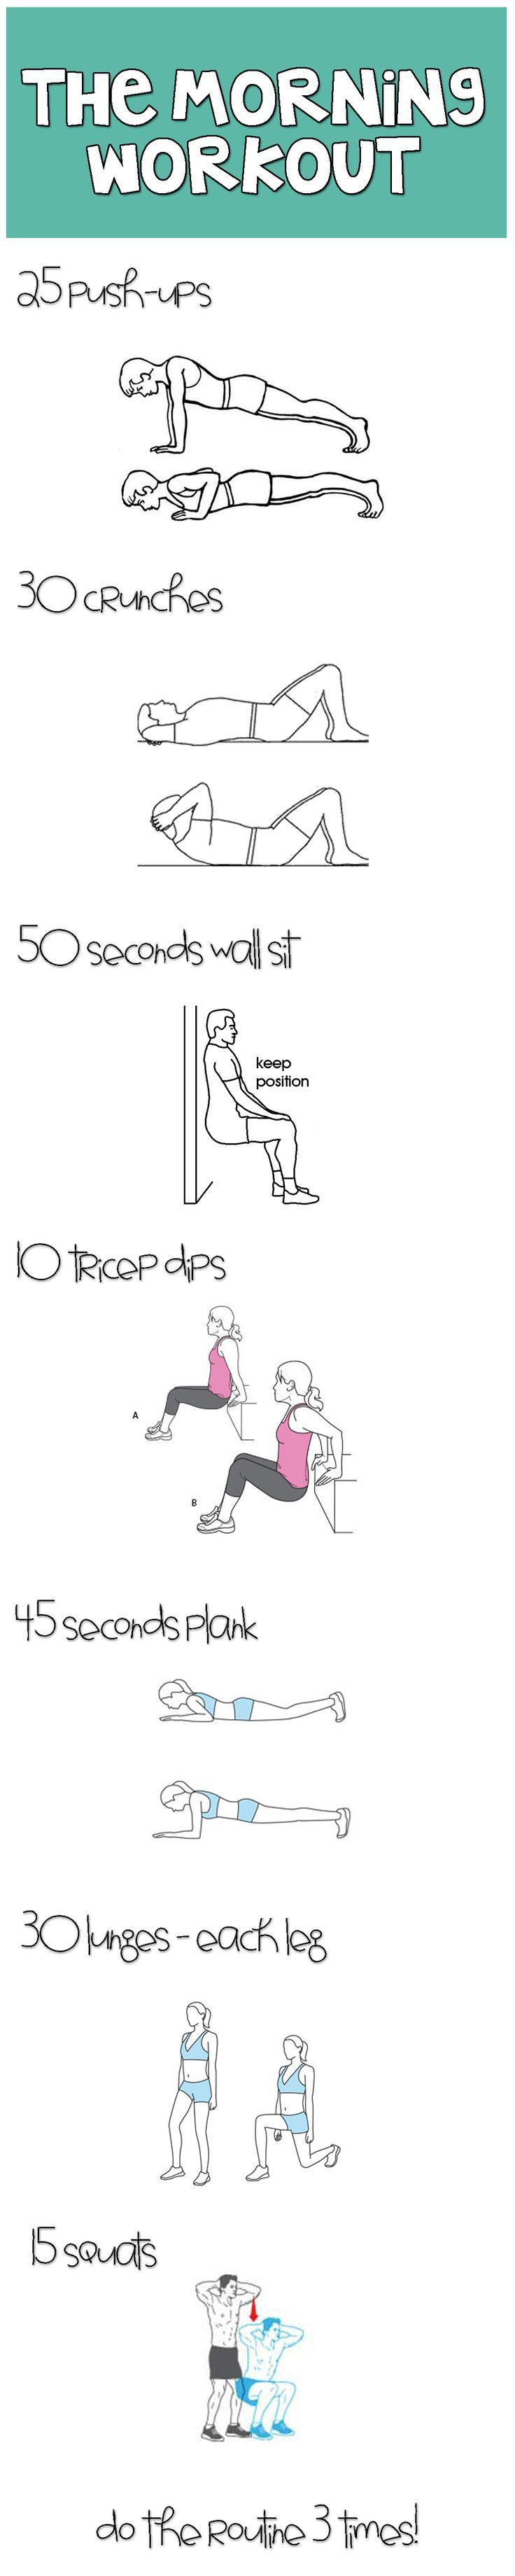 Could do this when traveling and away from the gym